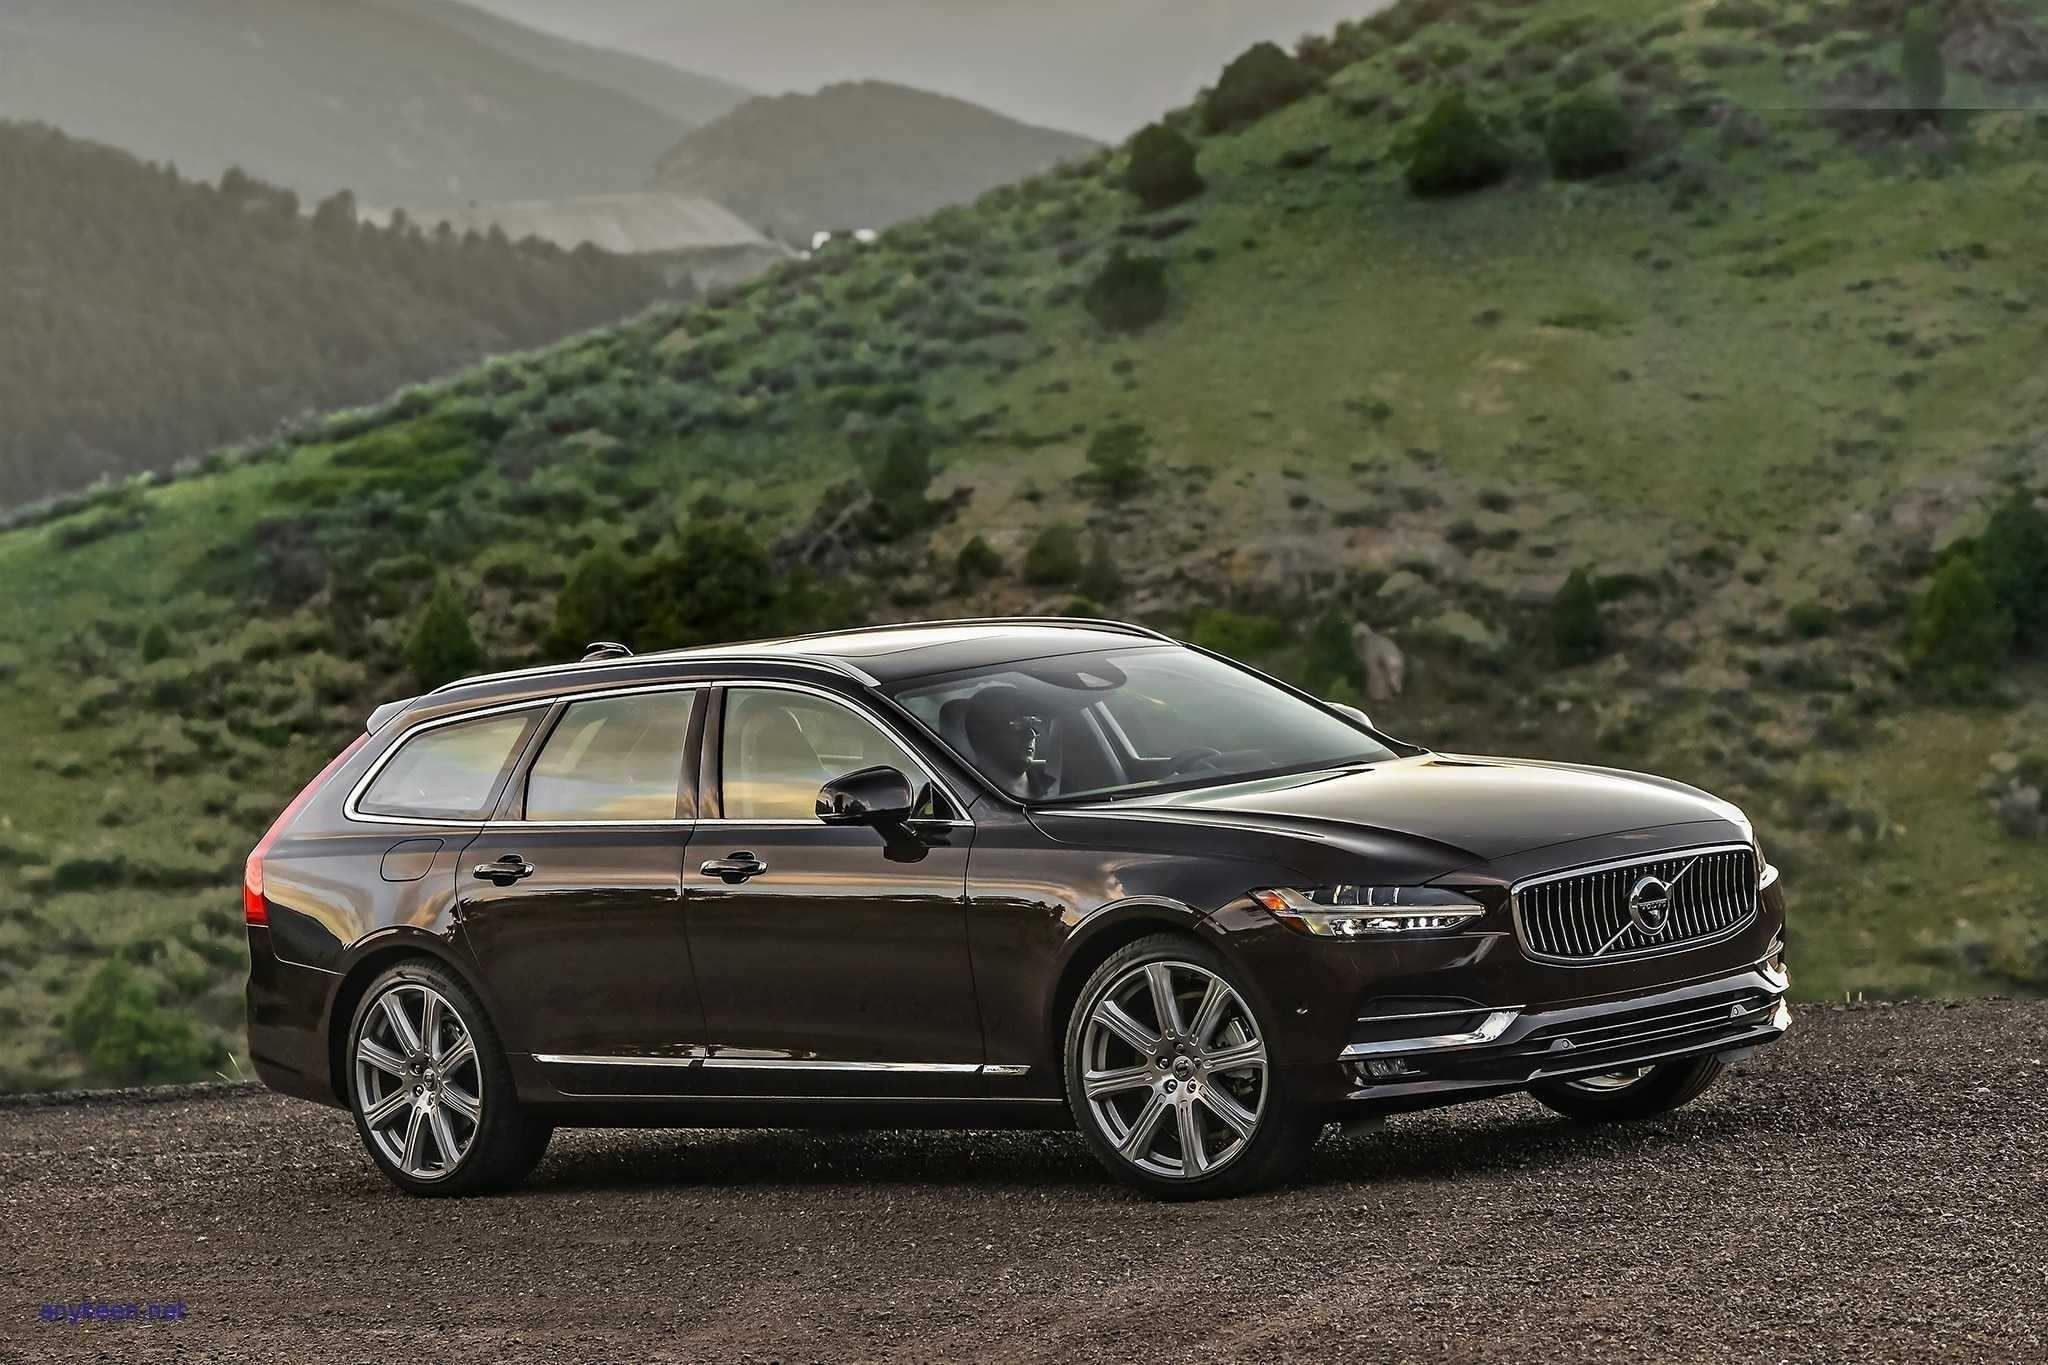 32 New 2020 Volvo V90 Specification Release Date